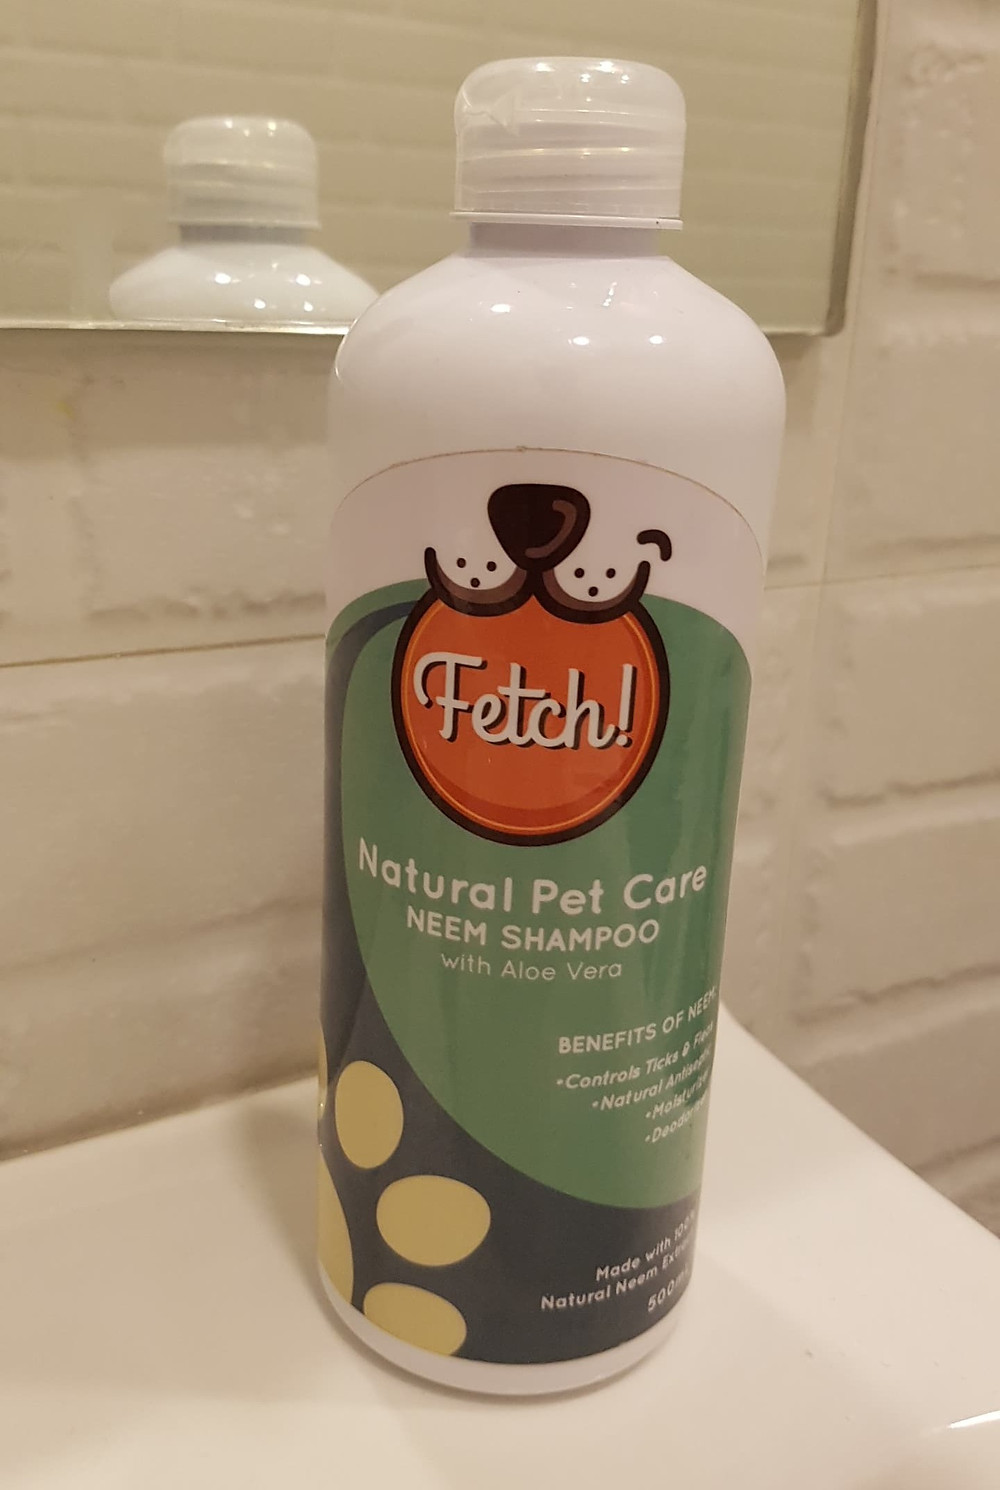 Fetch! Naturals Neem Shampoo for pets and humans